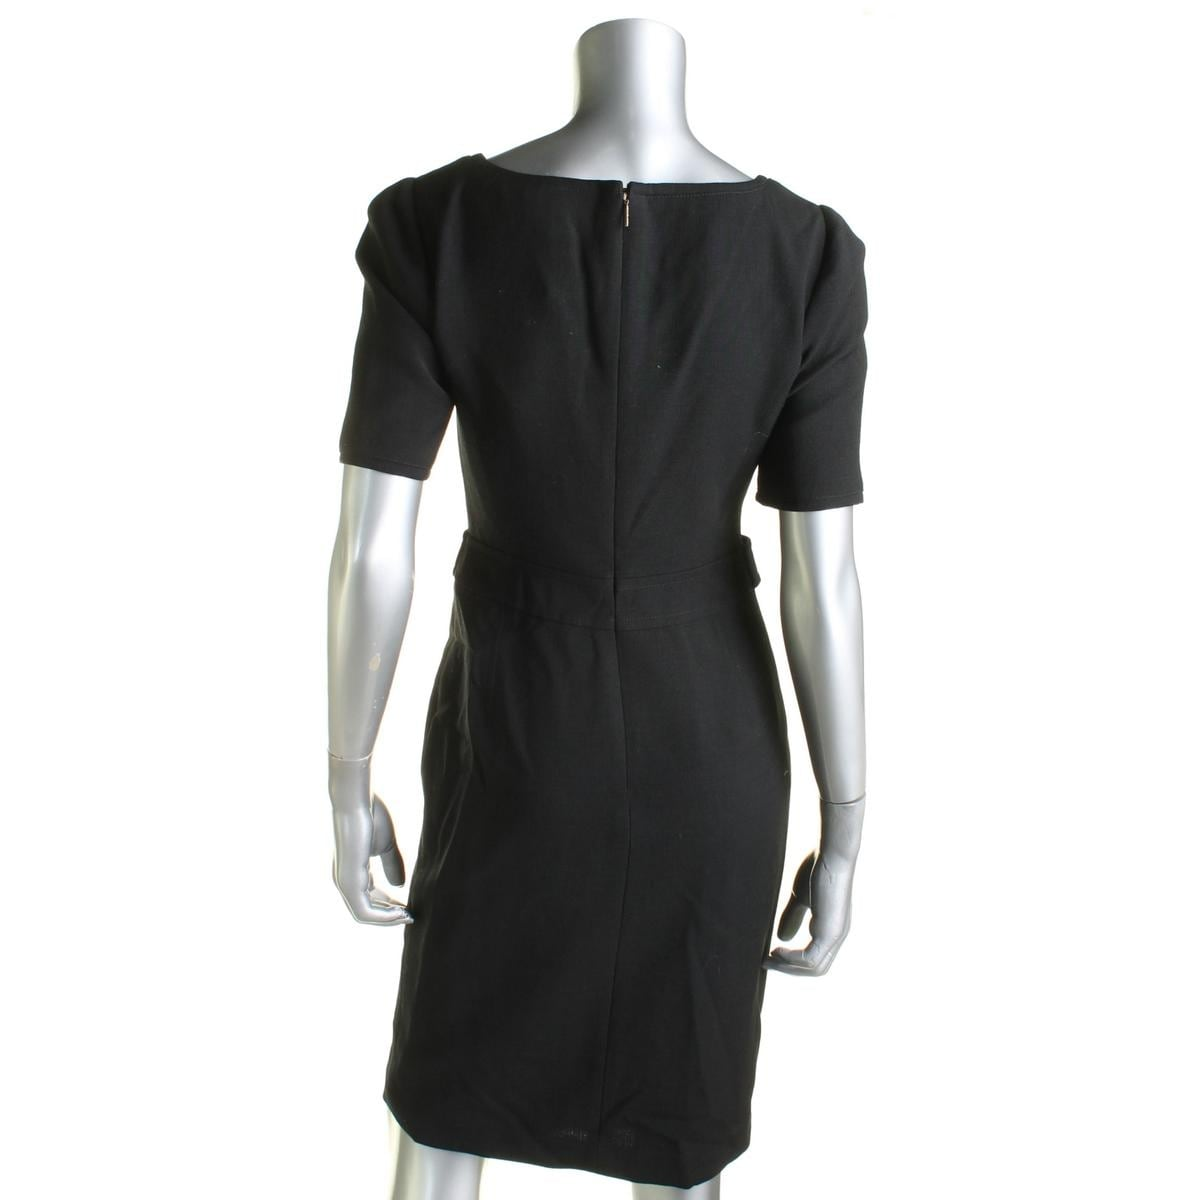 912312615f55 Shop Tory Burch Womens Lydia Cocktail Dress Wool Blend Split Neckline -  Free Shipping Today - Overstock - 14050426